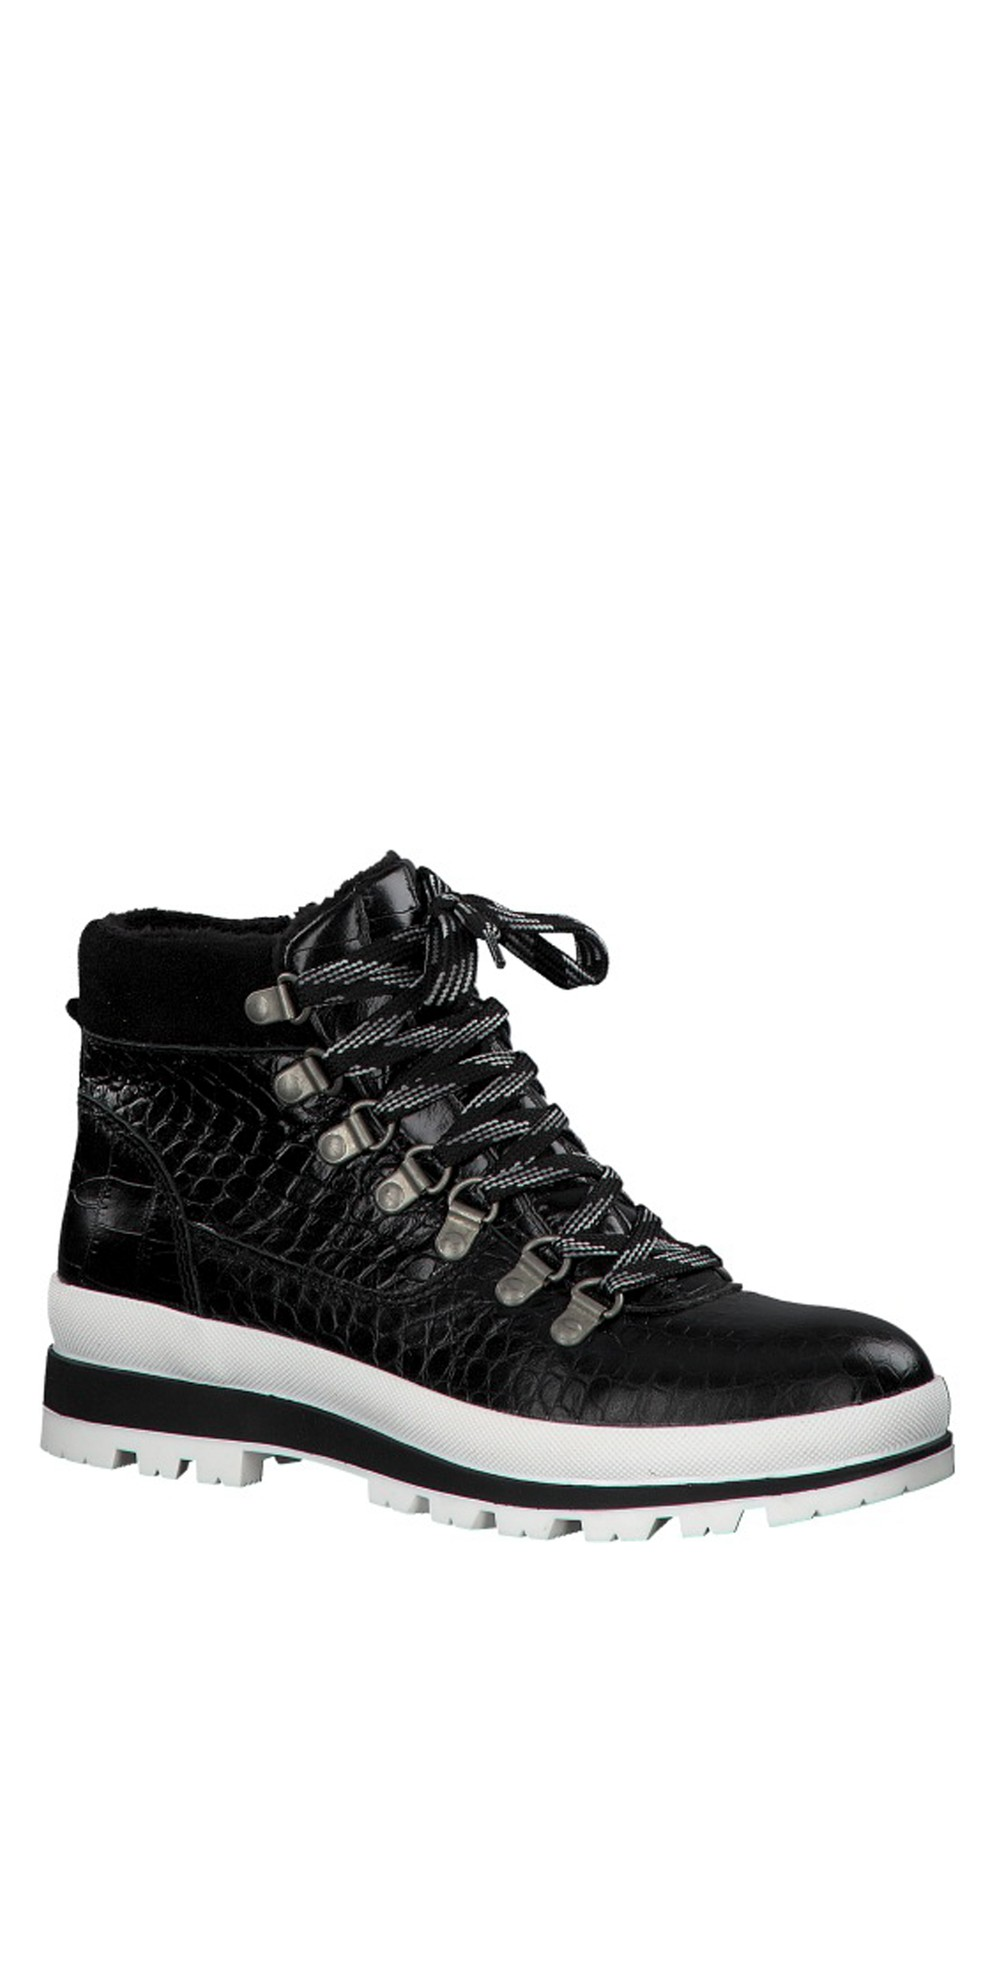 Colonia Croc Leather Hiker Boot  main image